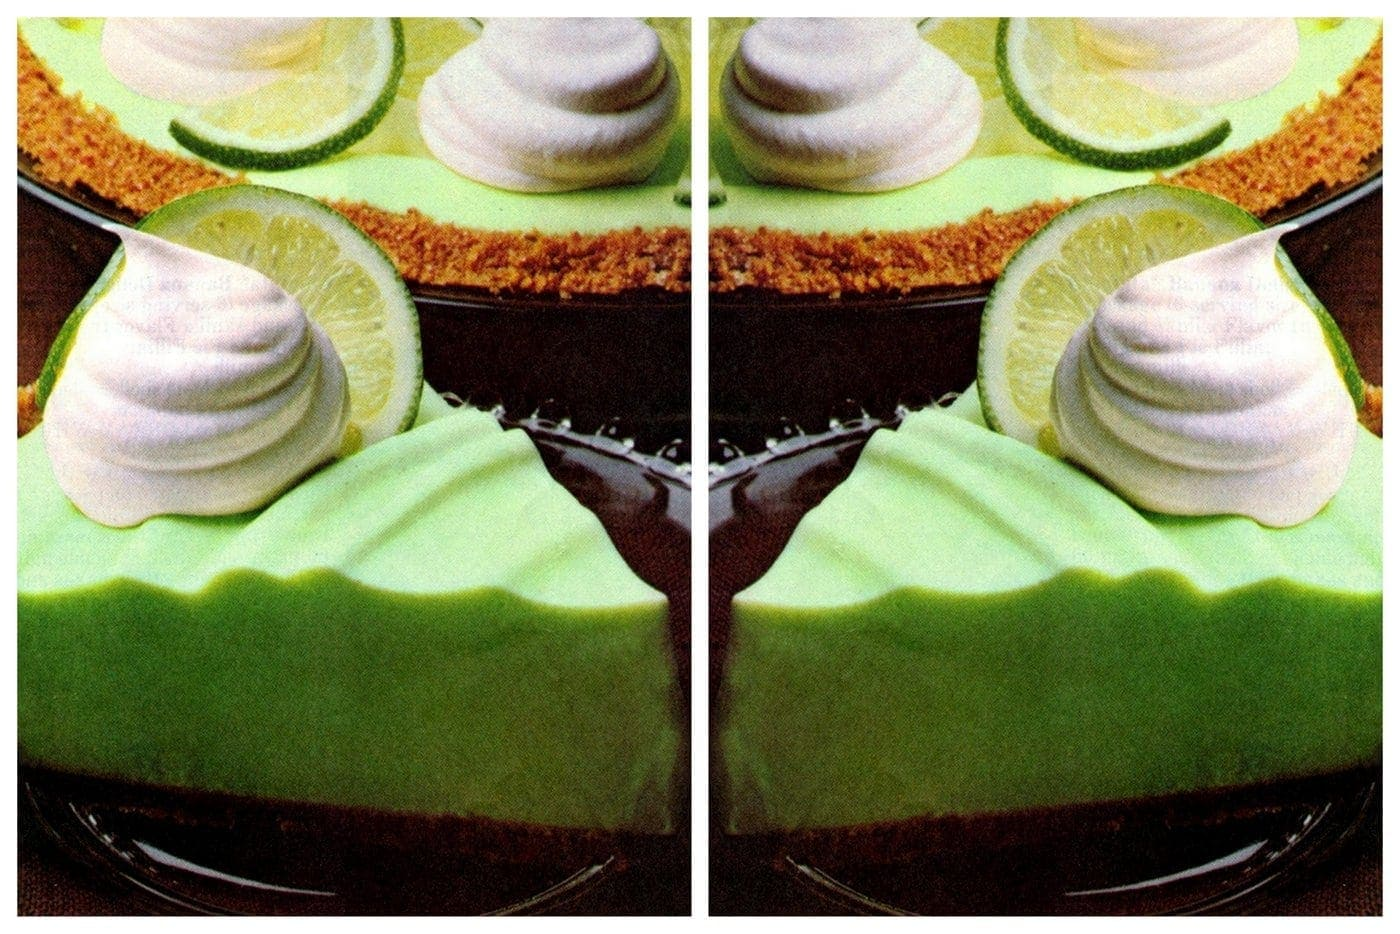 Bacardi daiquiri pie with lemon and lime flavors (2)